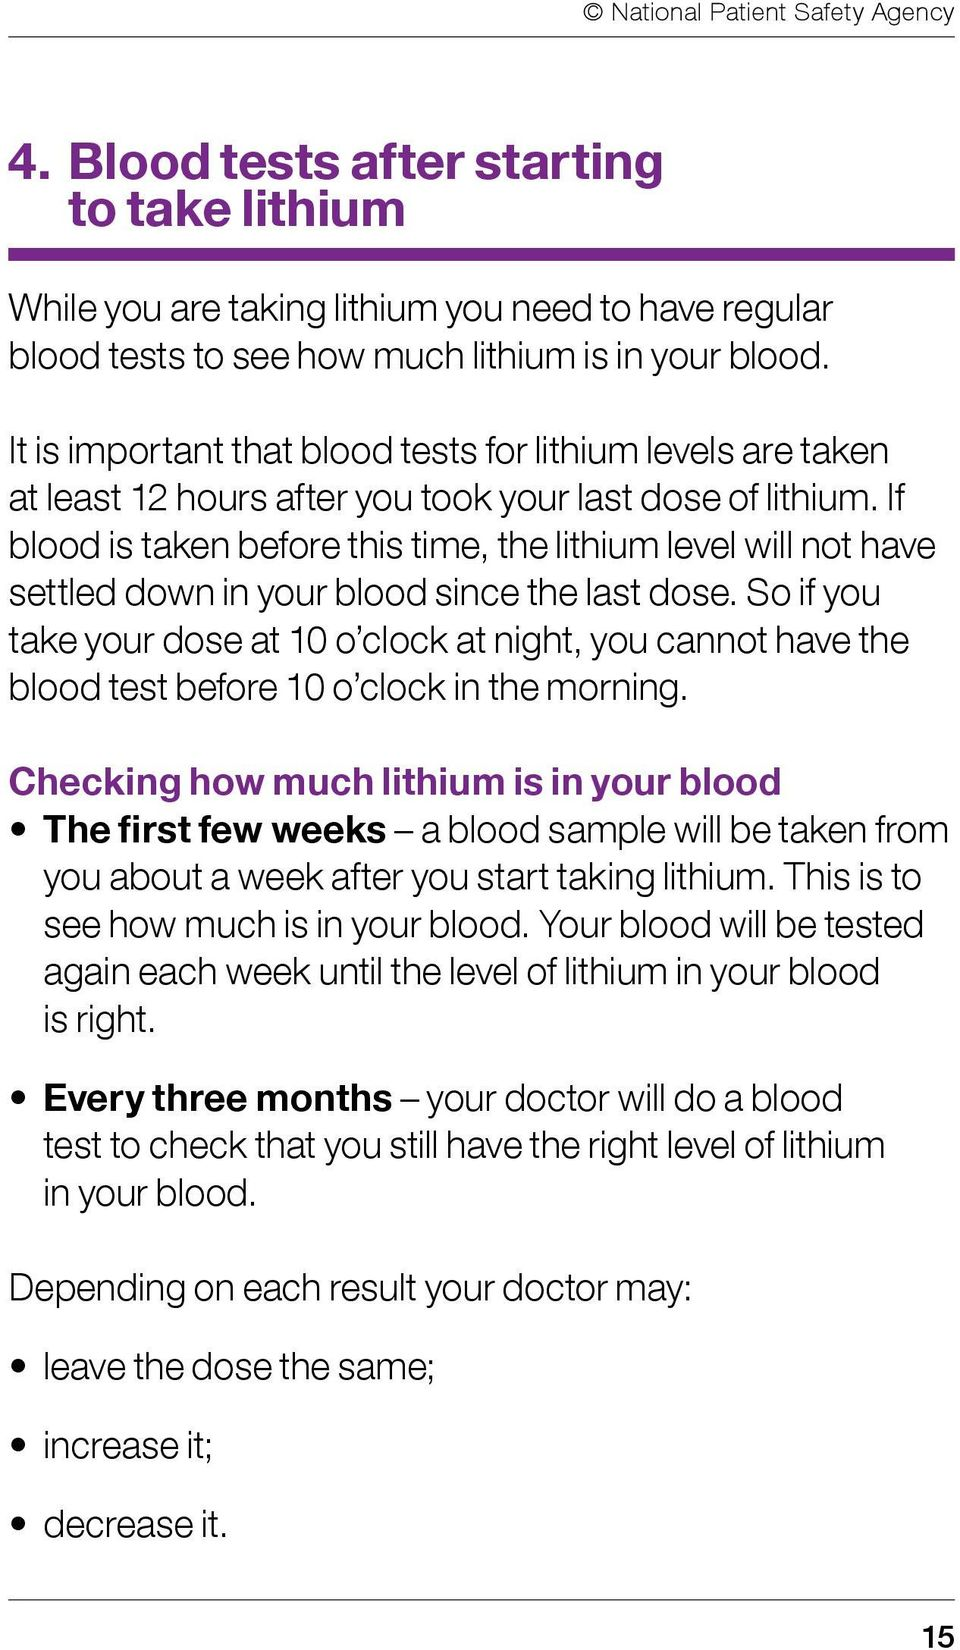 If blood is taken before this time, the lithium level will not have settled down in your blood since the last dose.